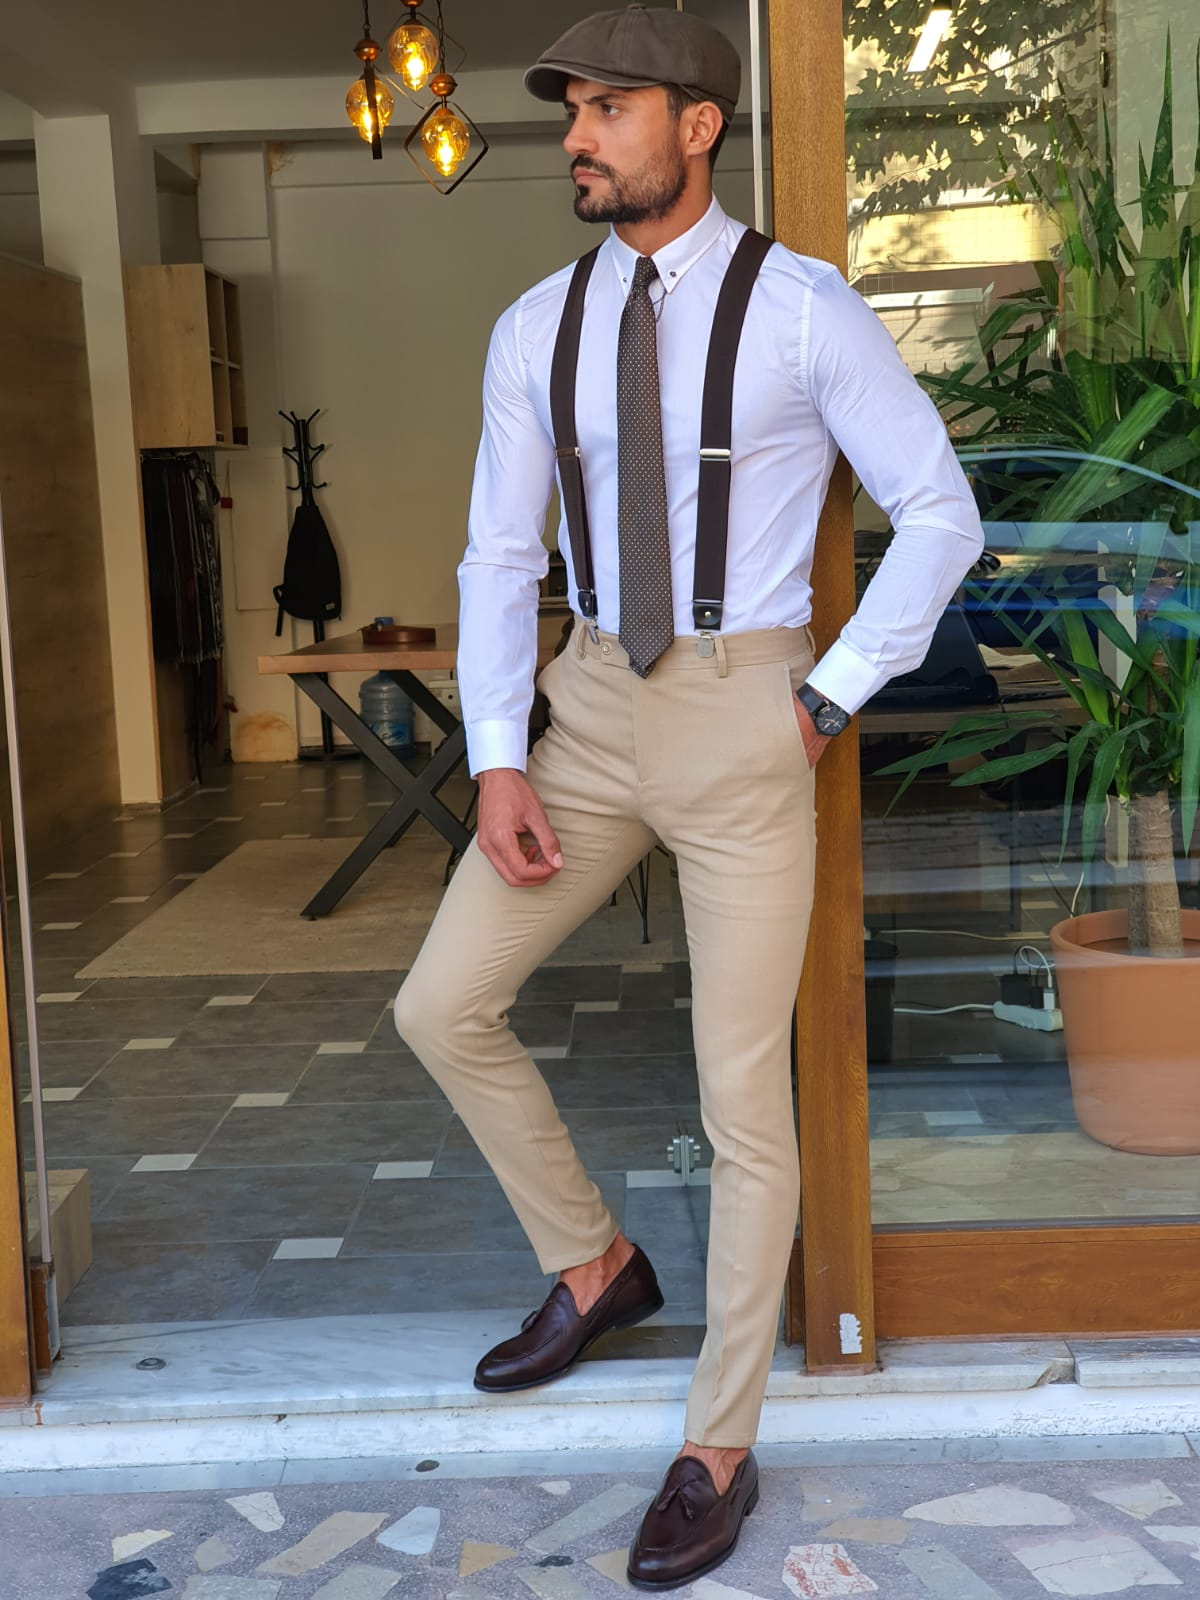 How to Dress for Fall: Ties & Attire by GentWith Blog